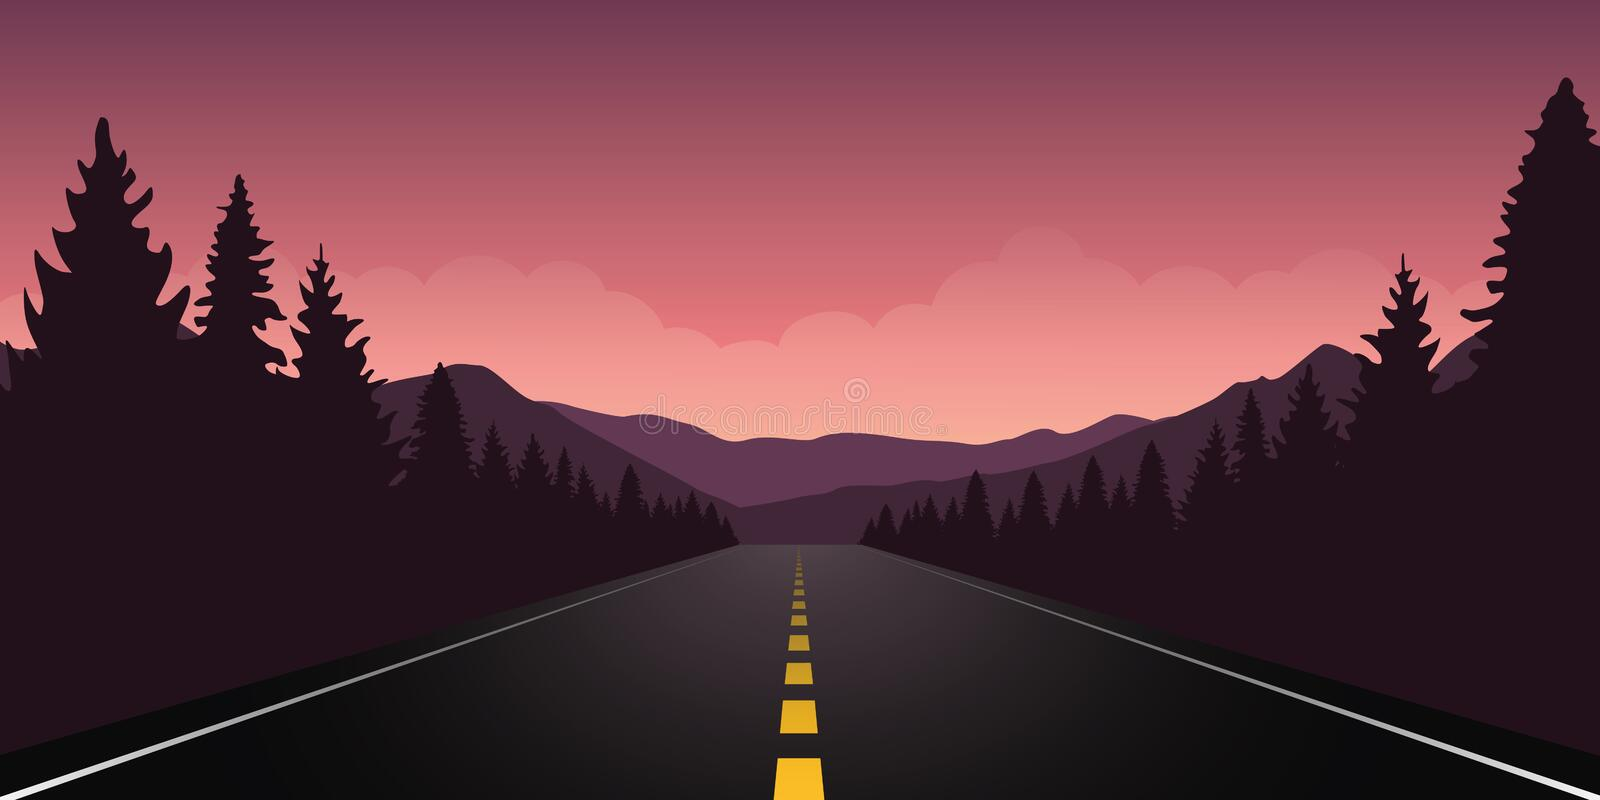 Roadtrip adventure staight road and forest landscape. Vector illustration EPS10 stock illustration